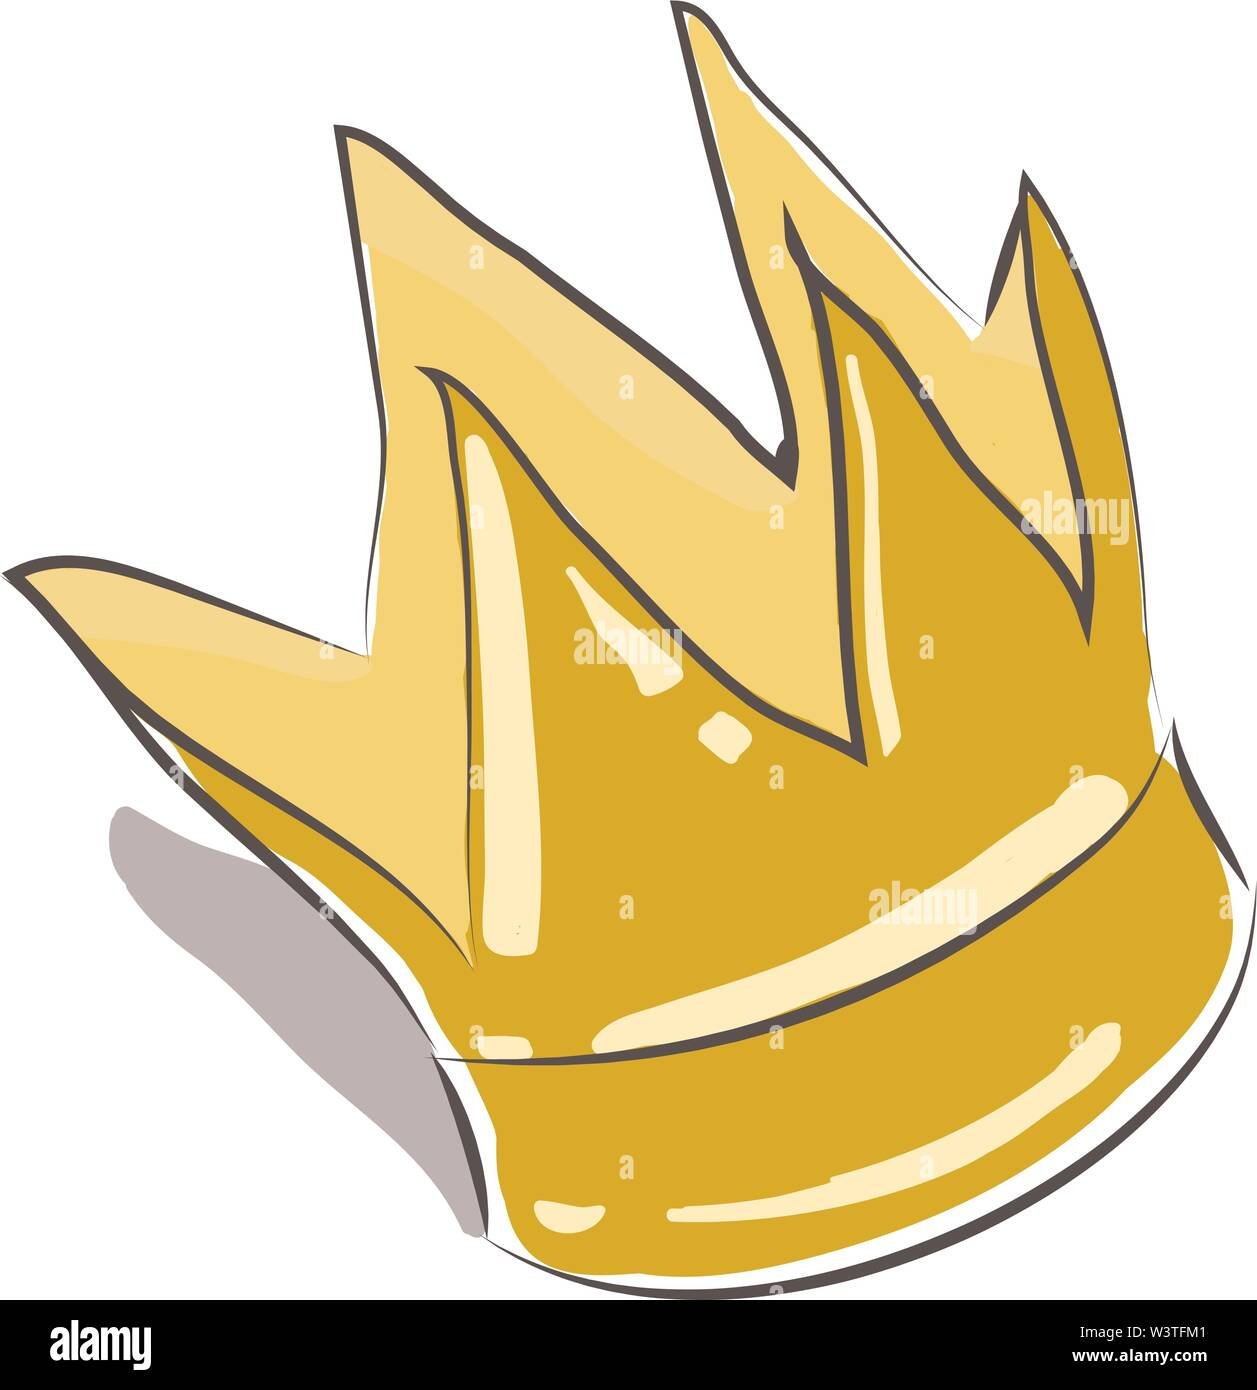 A small golden crown for a Prince, vector, color drawing or illustration. - Stock Image